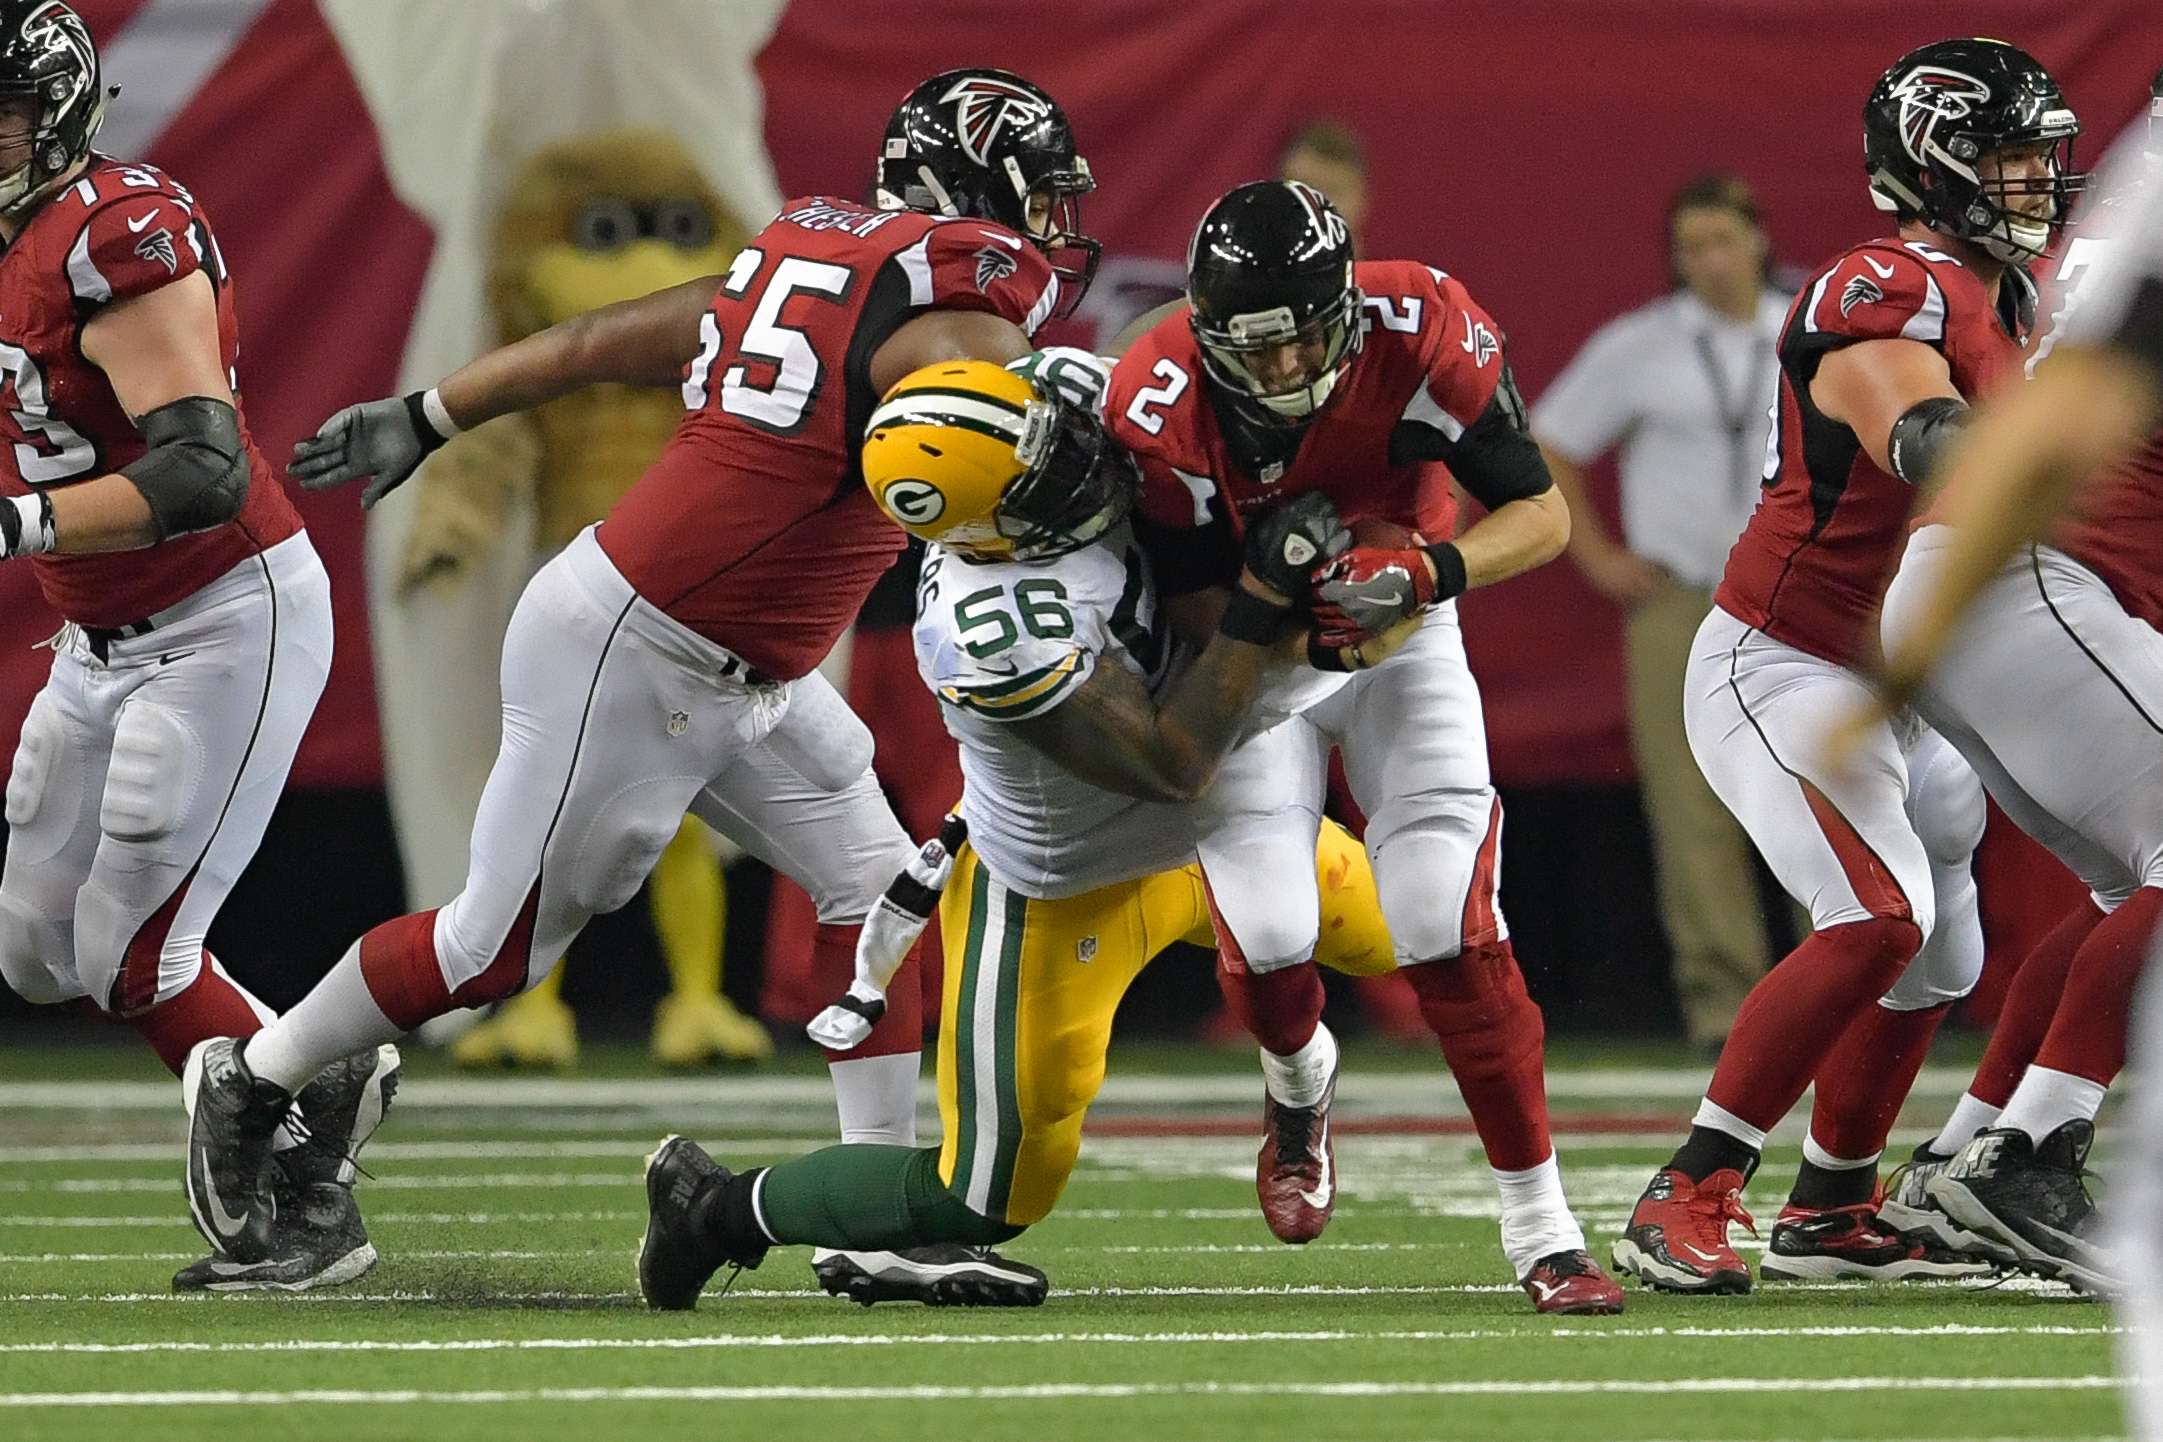 The Packer pass rush should be there again this week